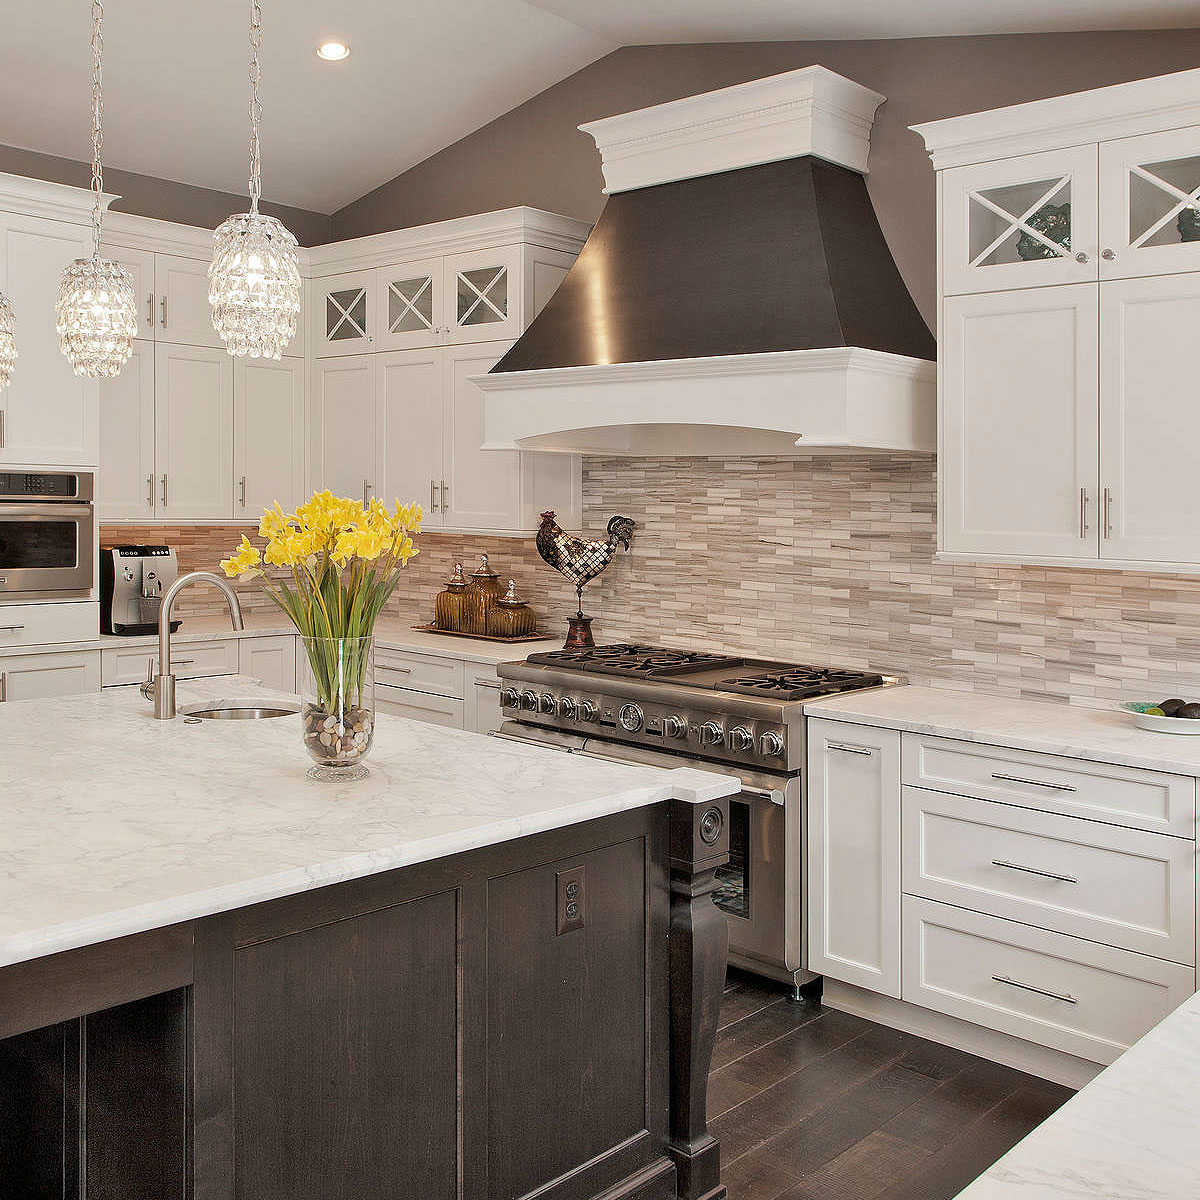 BACKSPLASH.com (Best Kitchen Backsplash Ideas) - Top Trends!